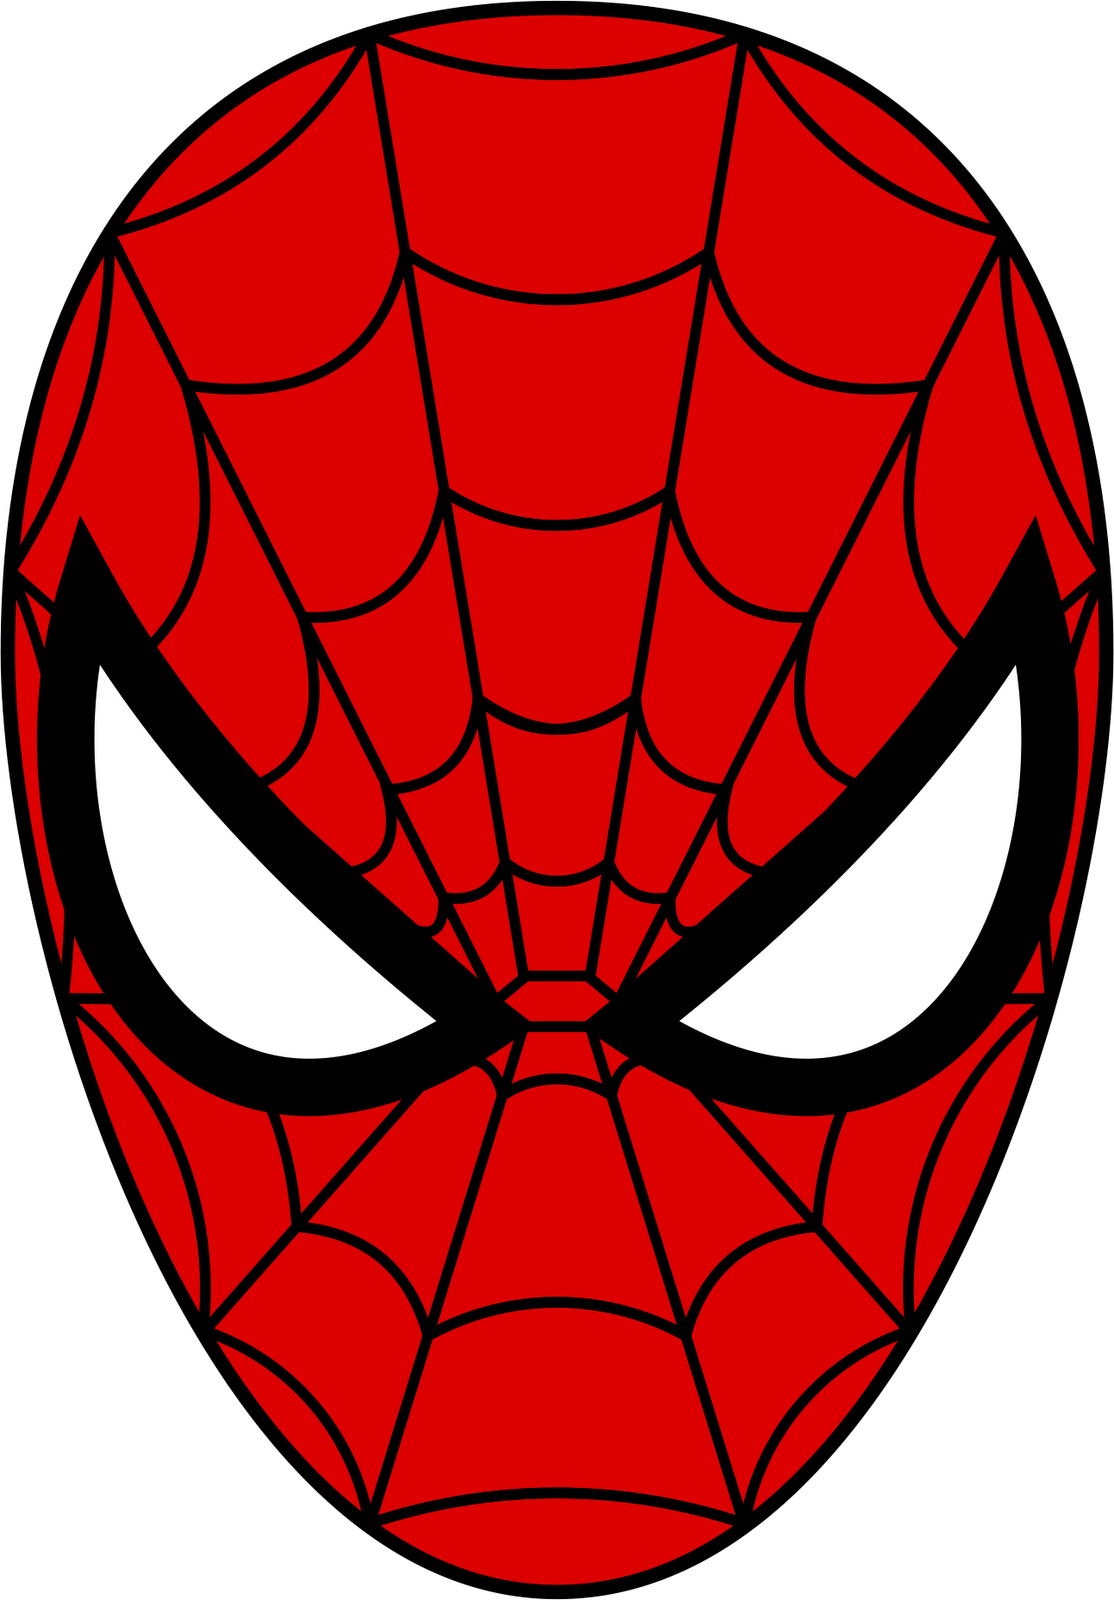 Spiderman clipart transparent Transparent StickPNG Down Spiderman Lying